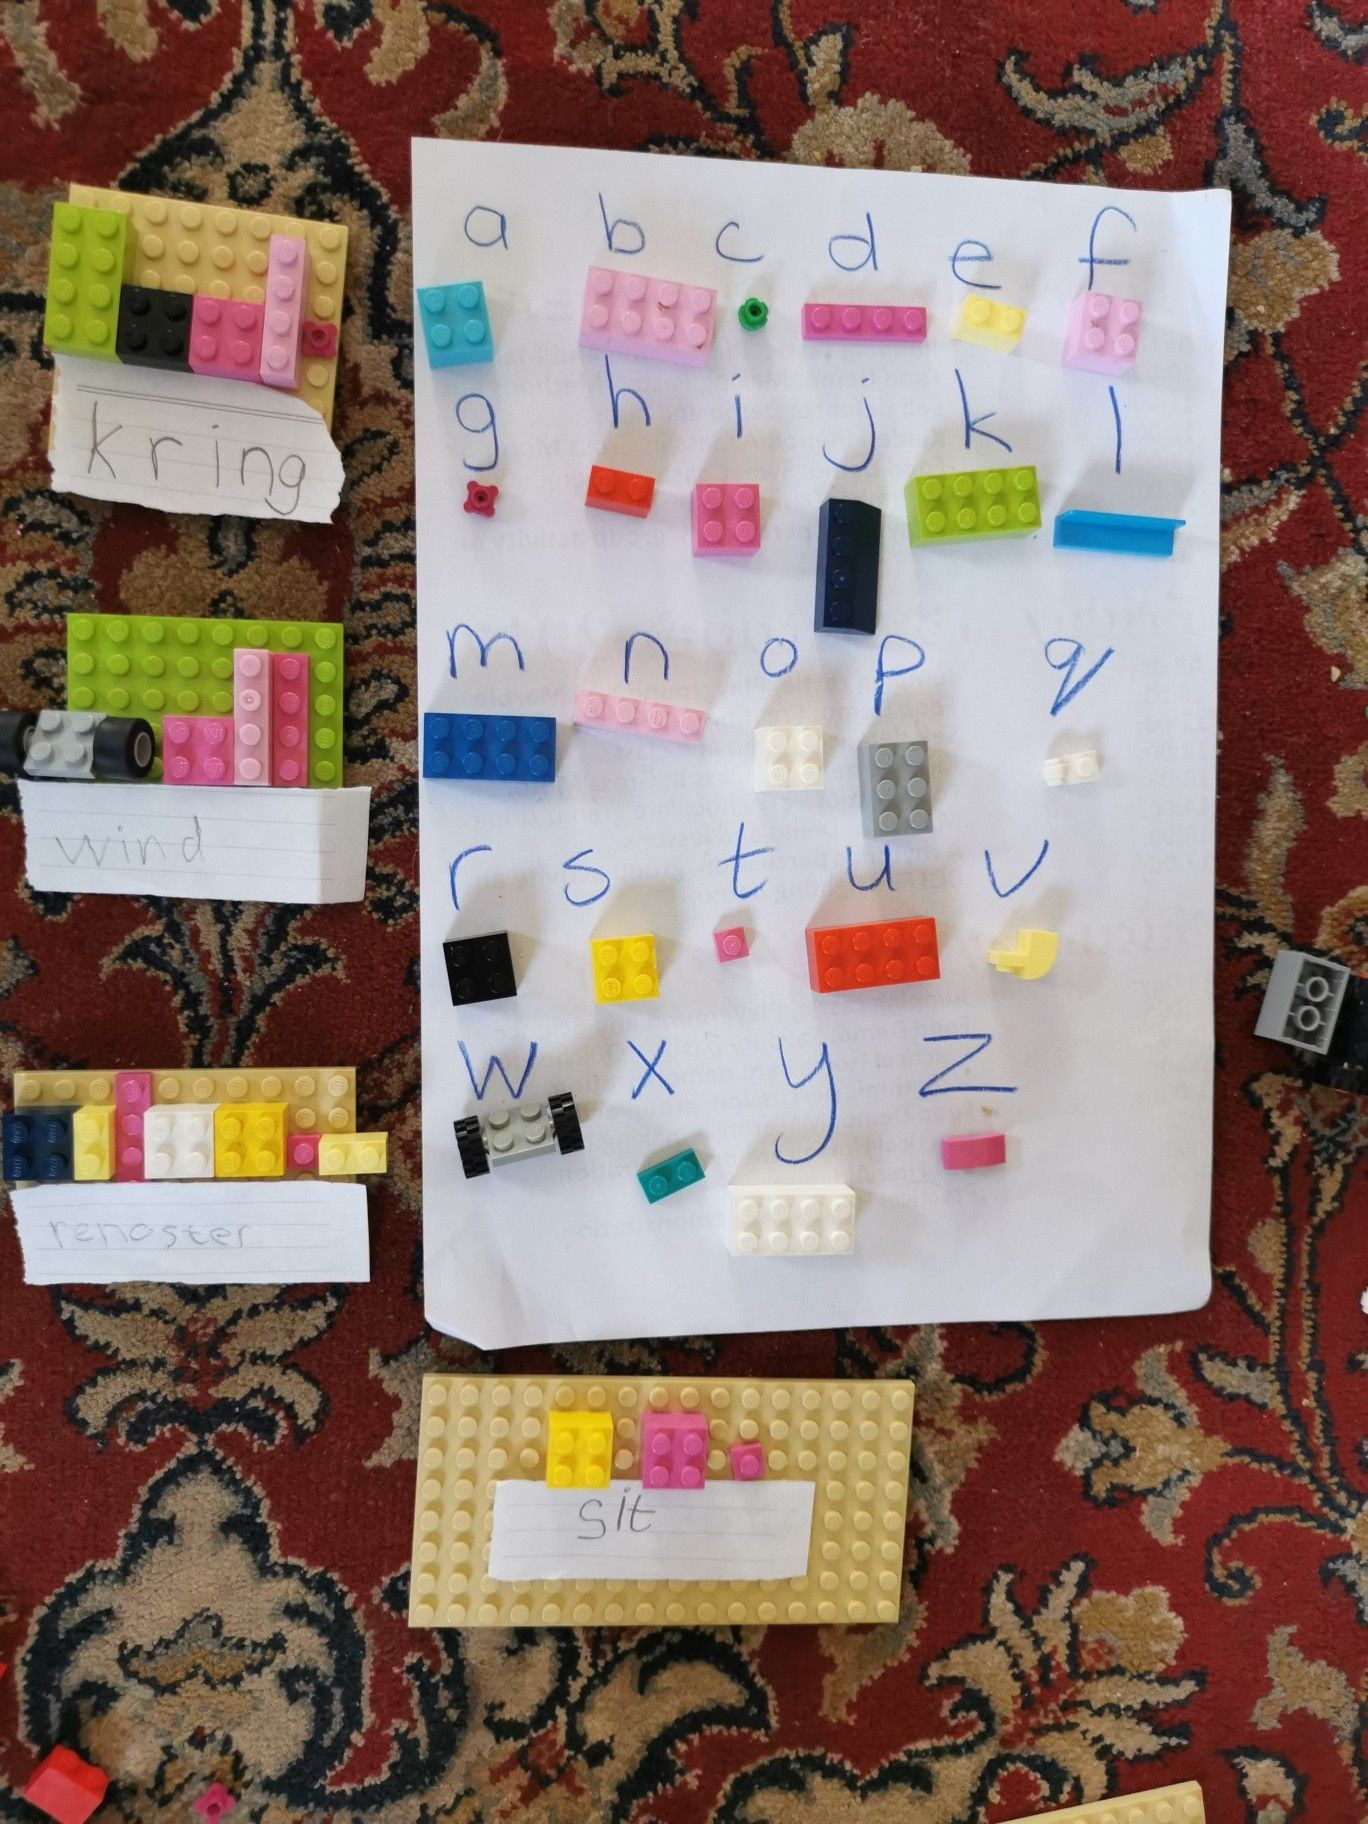 Build Spelling Words With Lego And Code